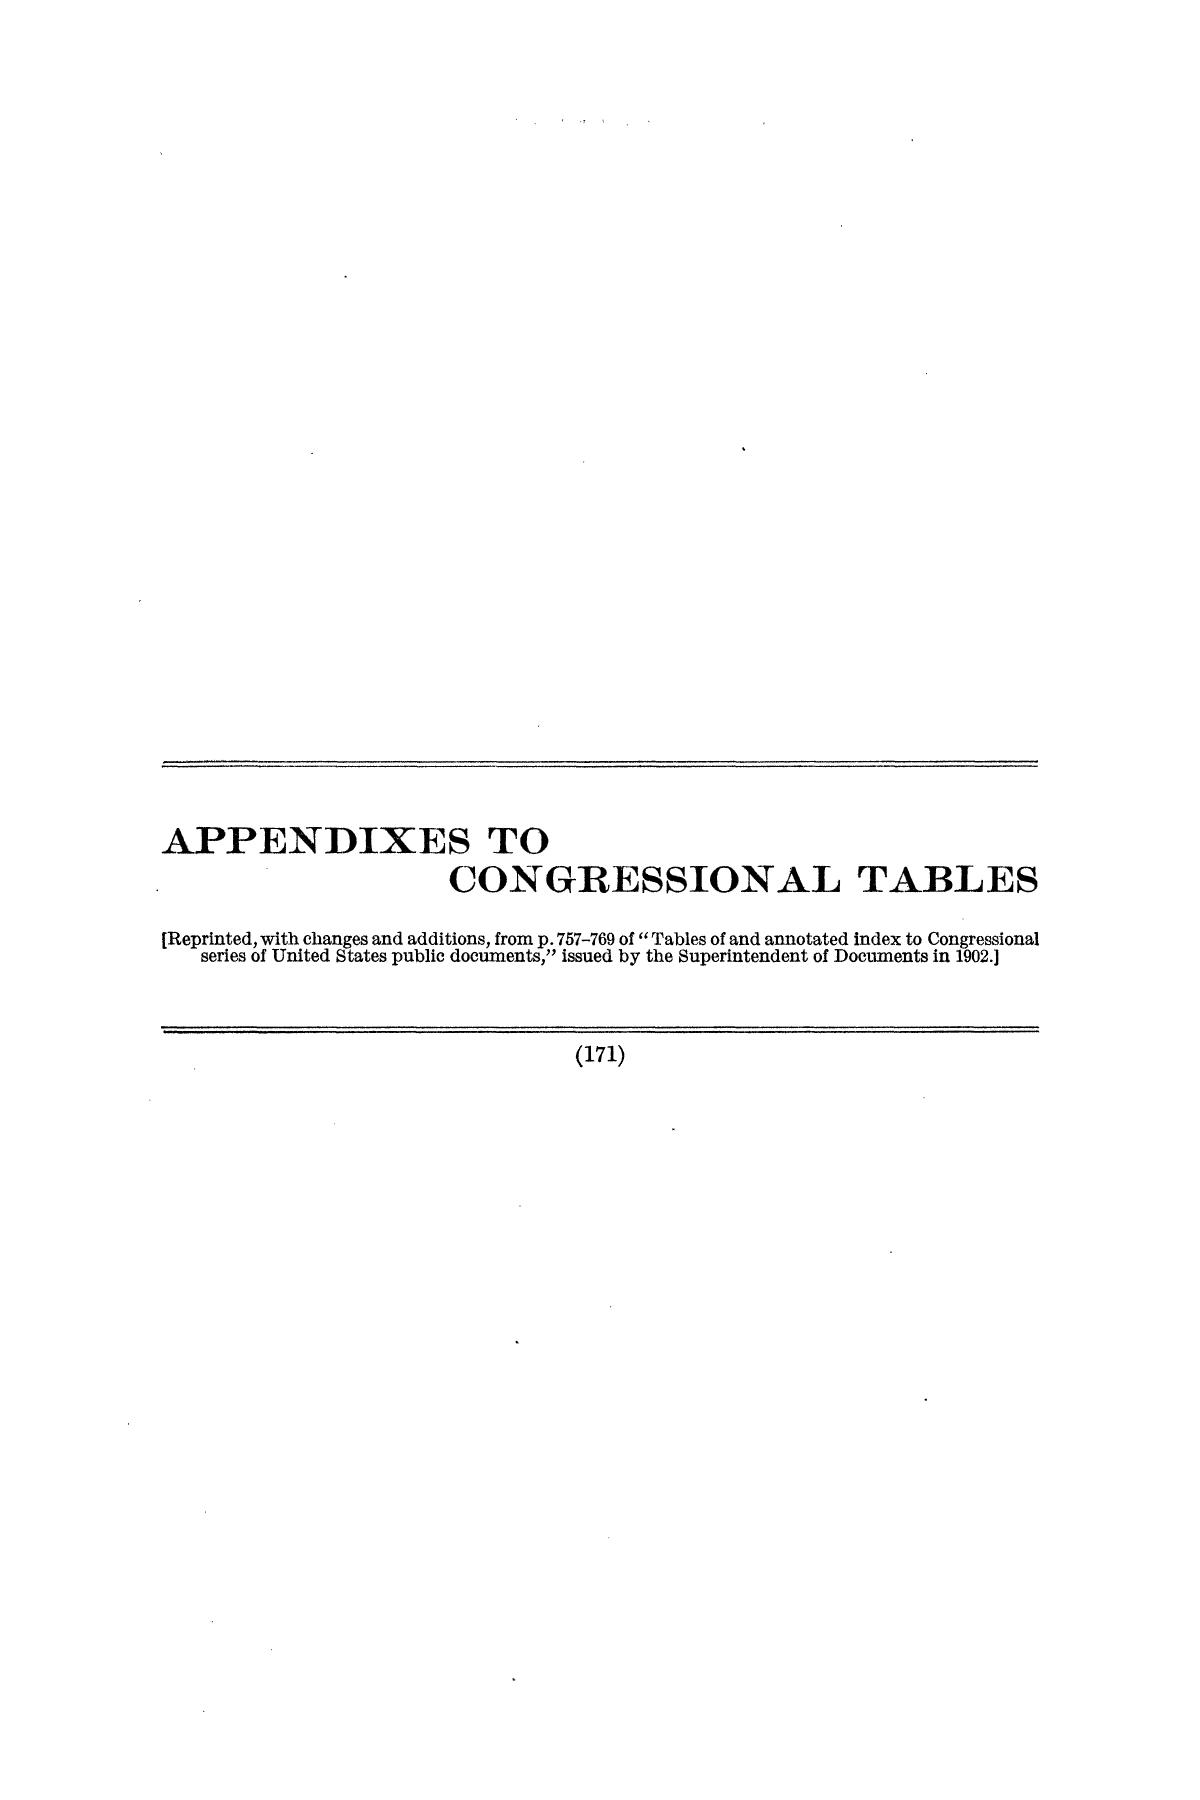 Checklist of United States Public Documents, 1789-1909, Third Edition Revised and Enlarged, Volume 1, Lists of Congressional and Departmental Publications                                                                                                      171